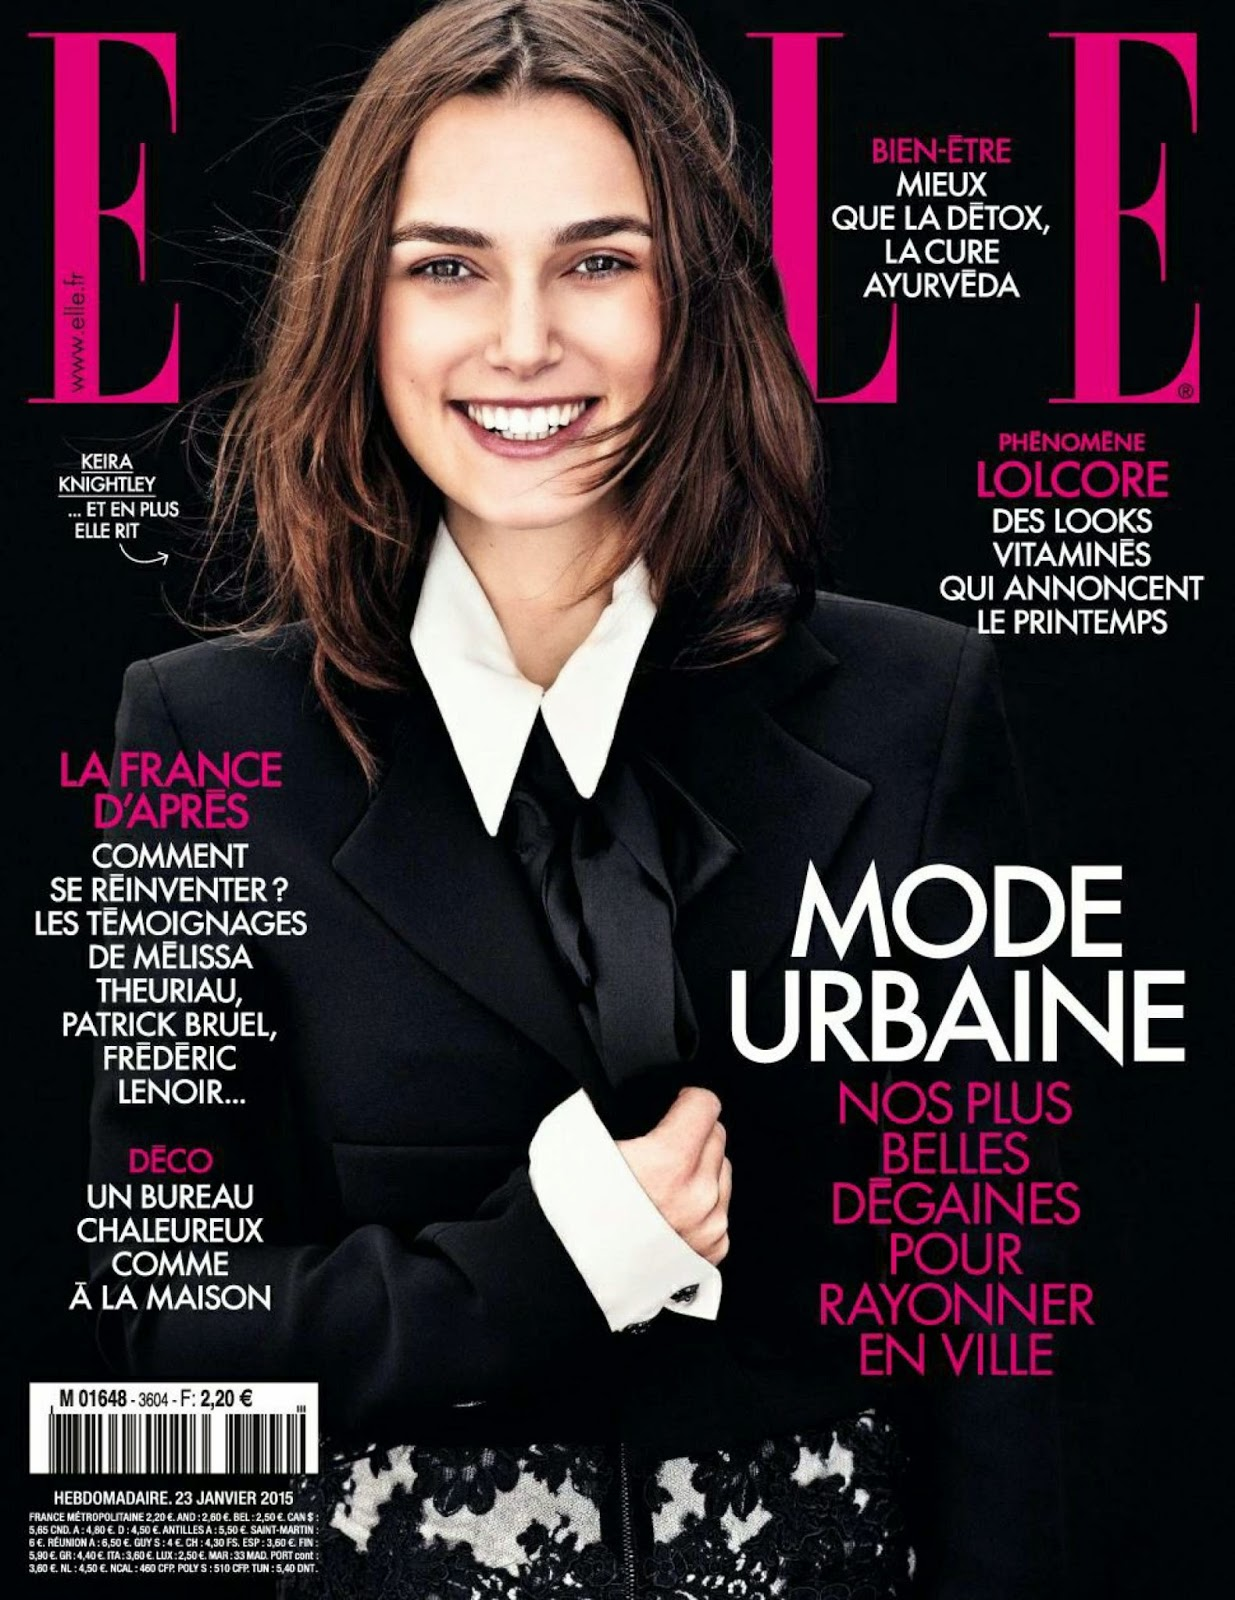 Actress: Keira Knightley for Elle, France